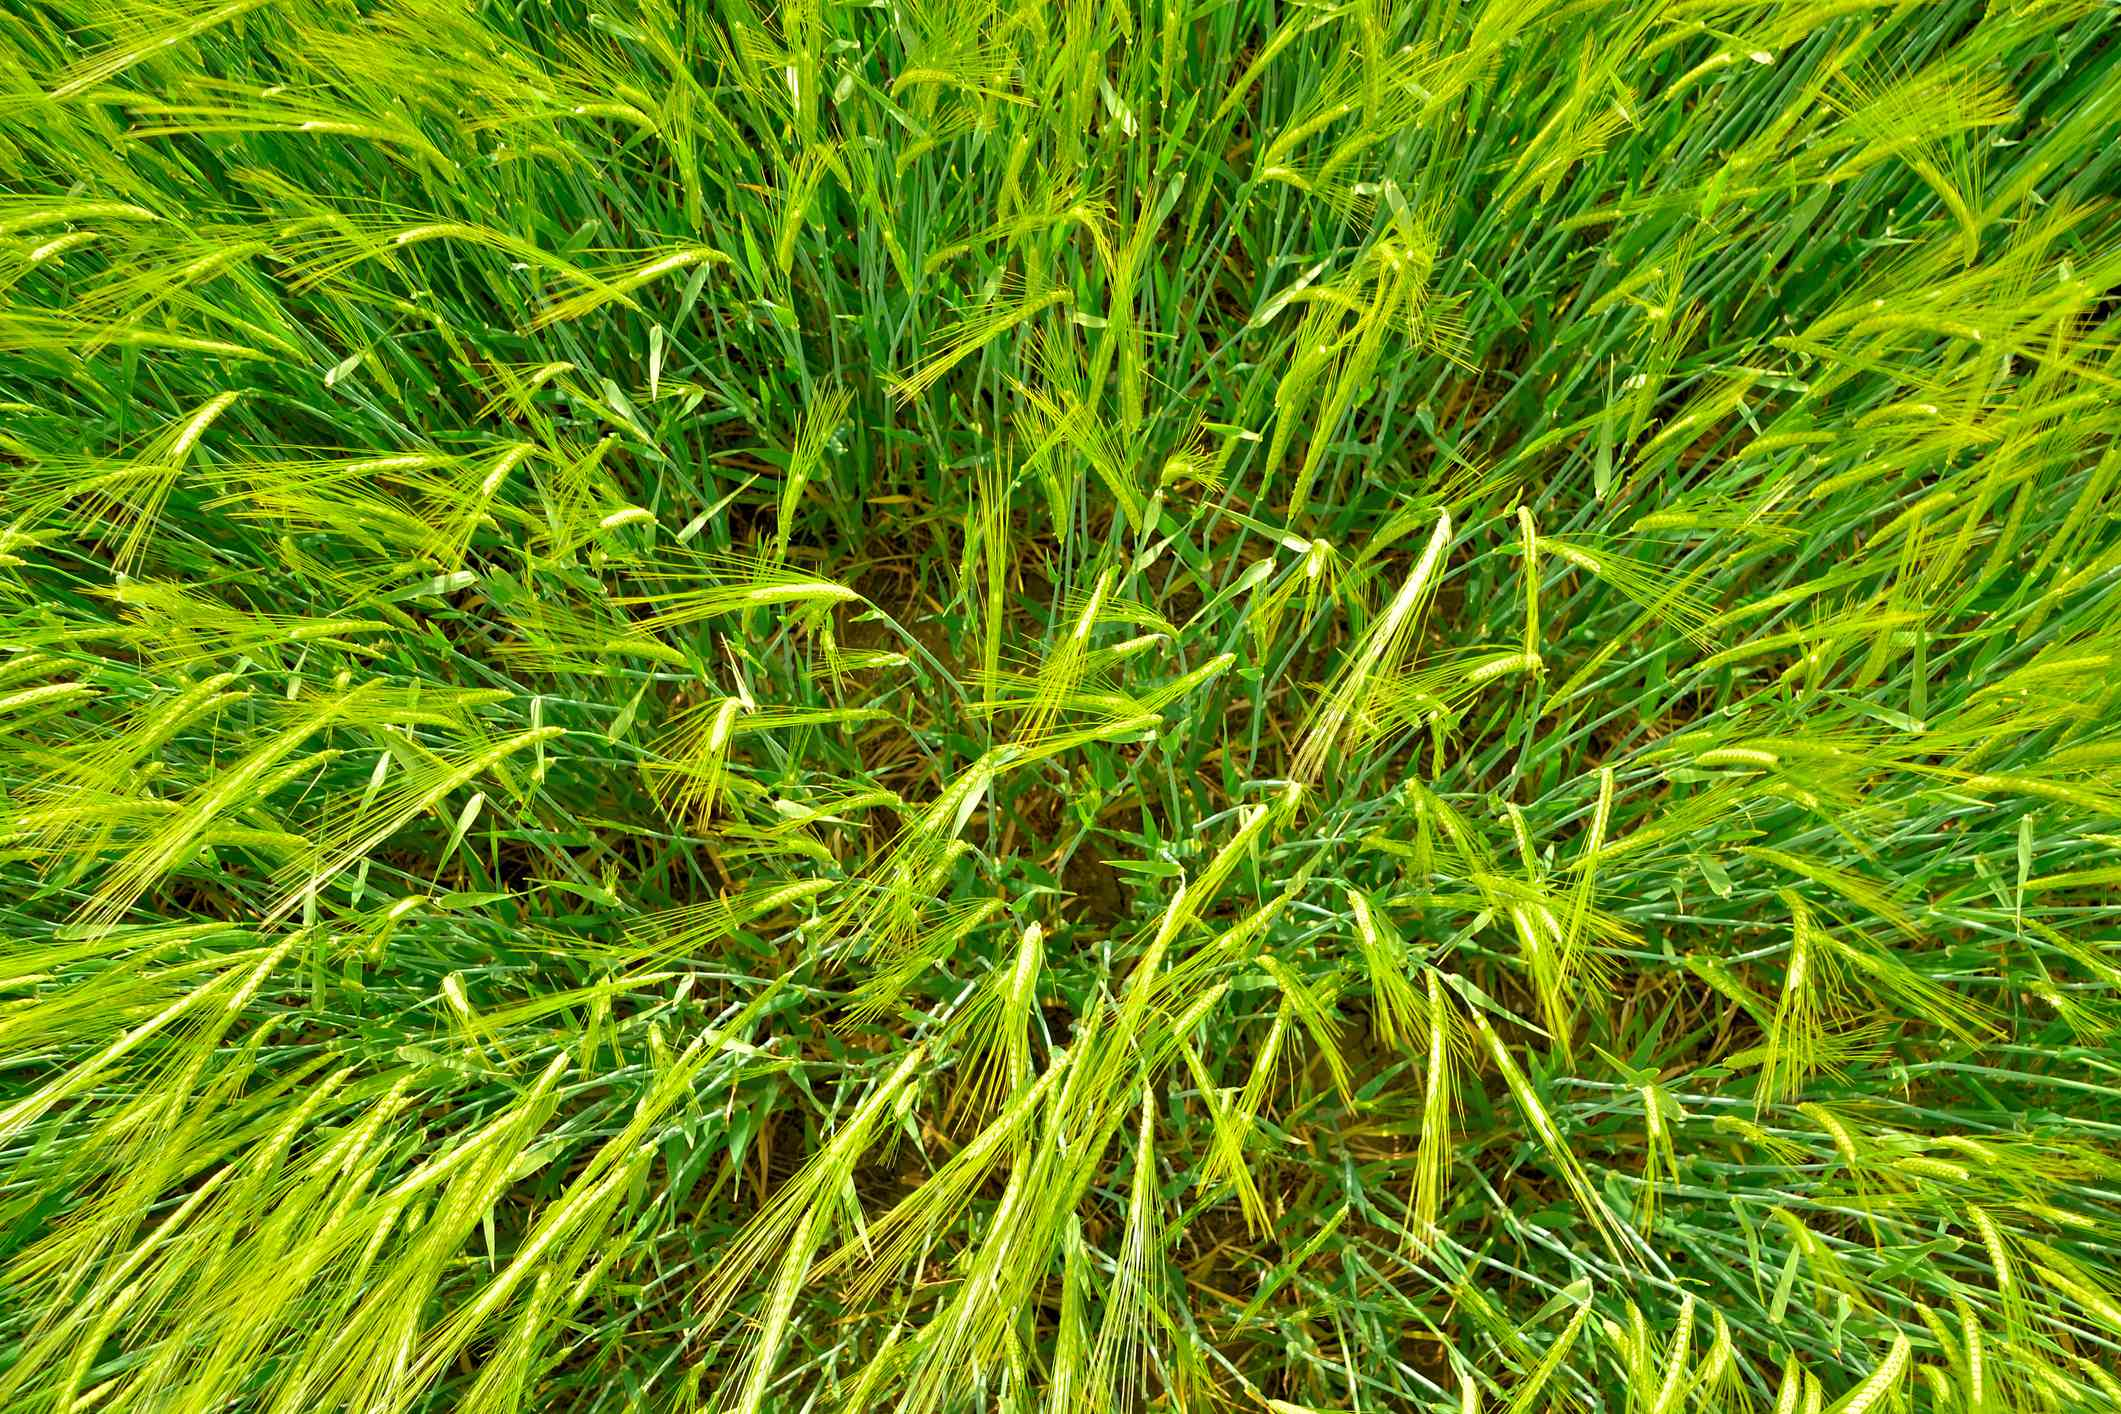 An overhead view of a patch of bright green wheatgrass